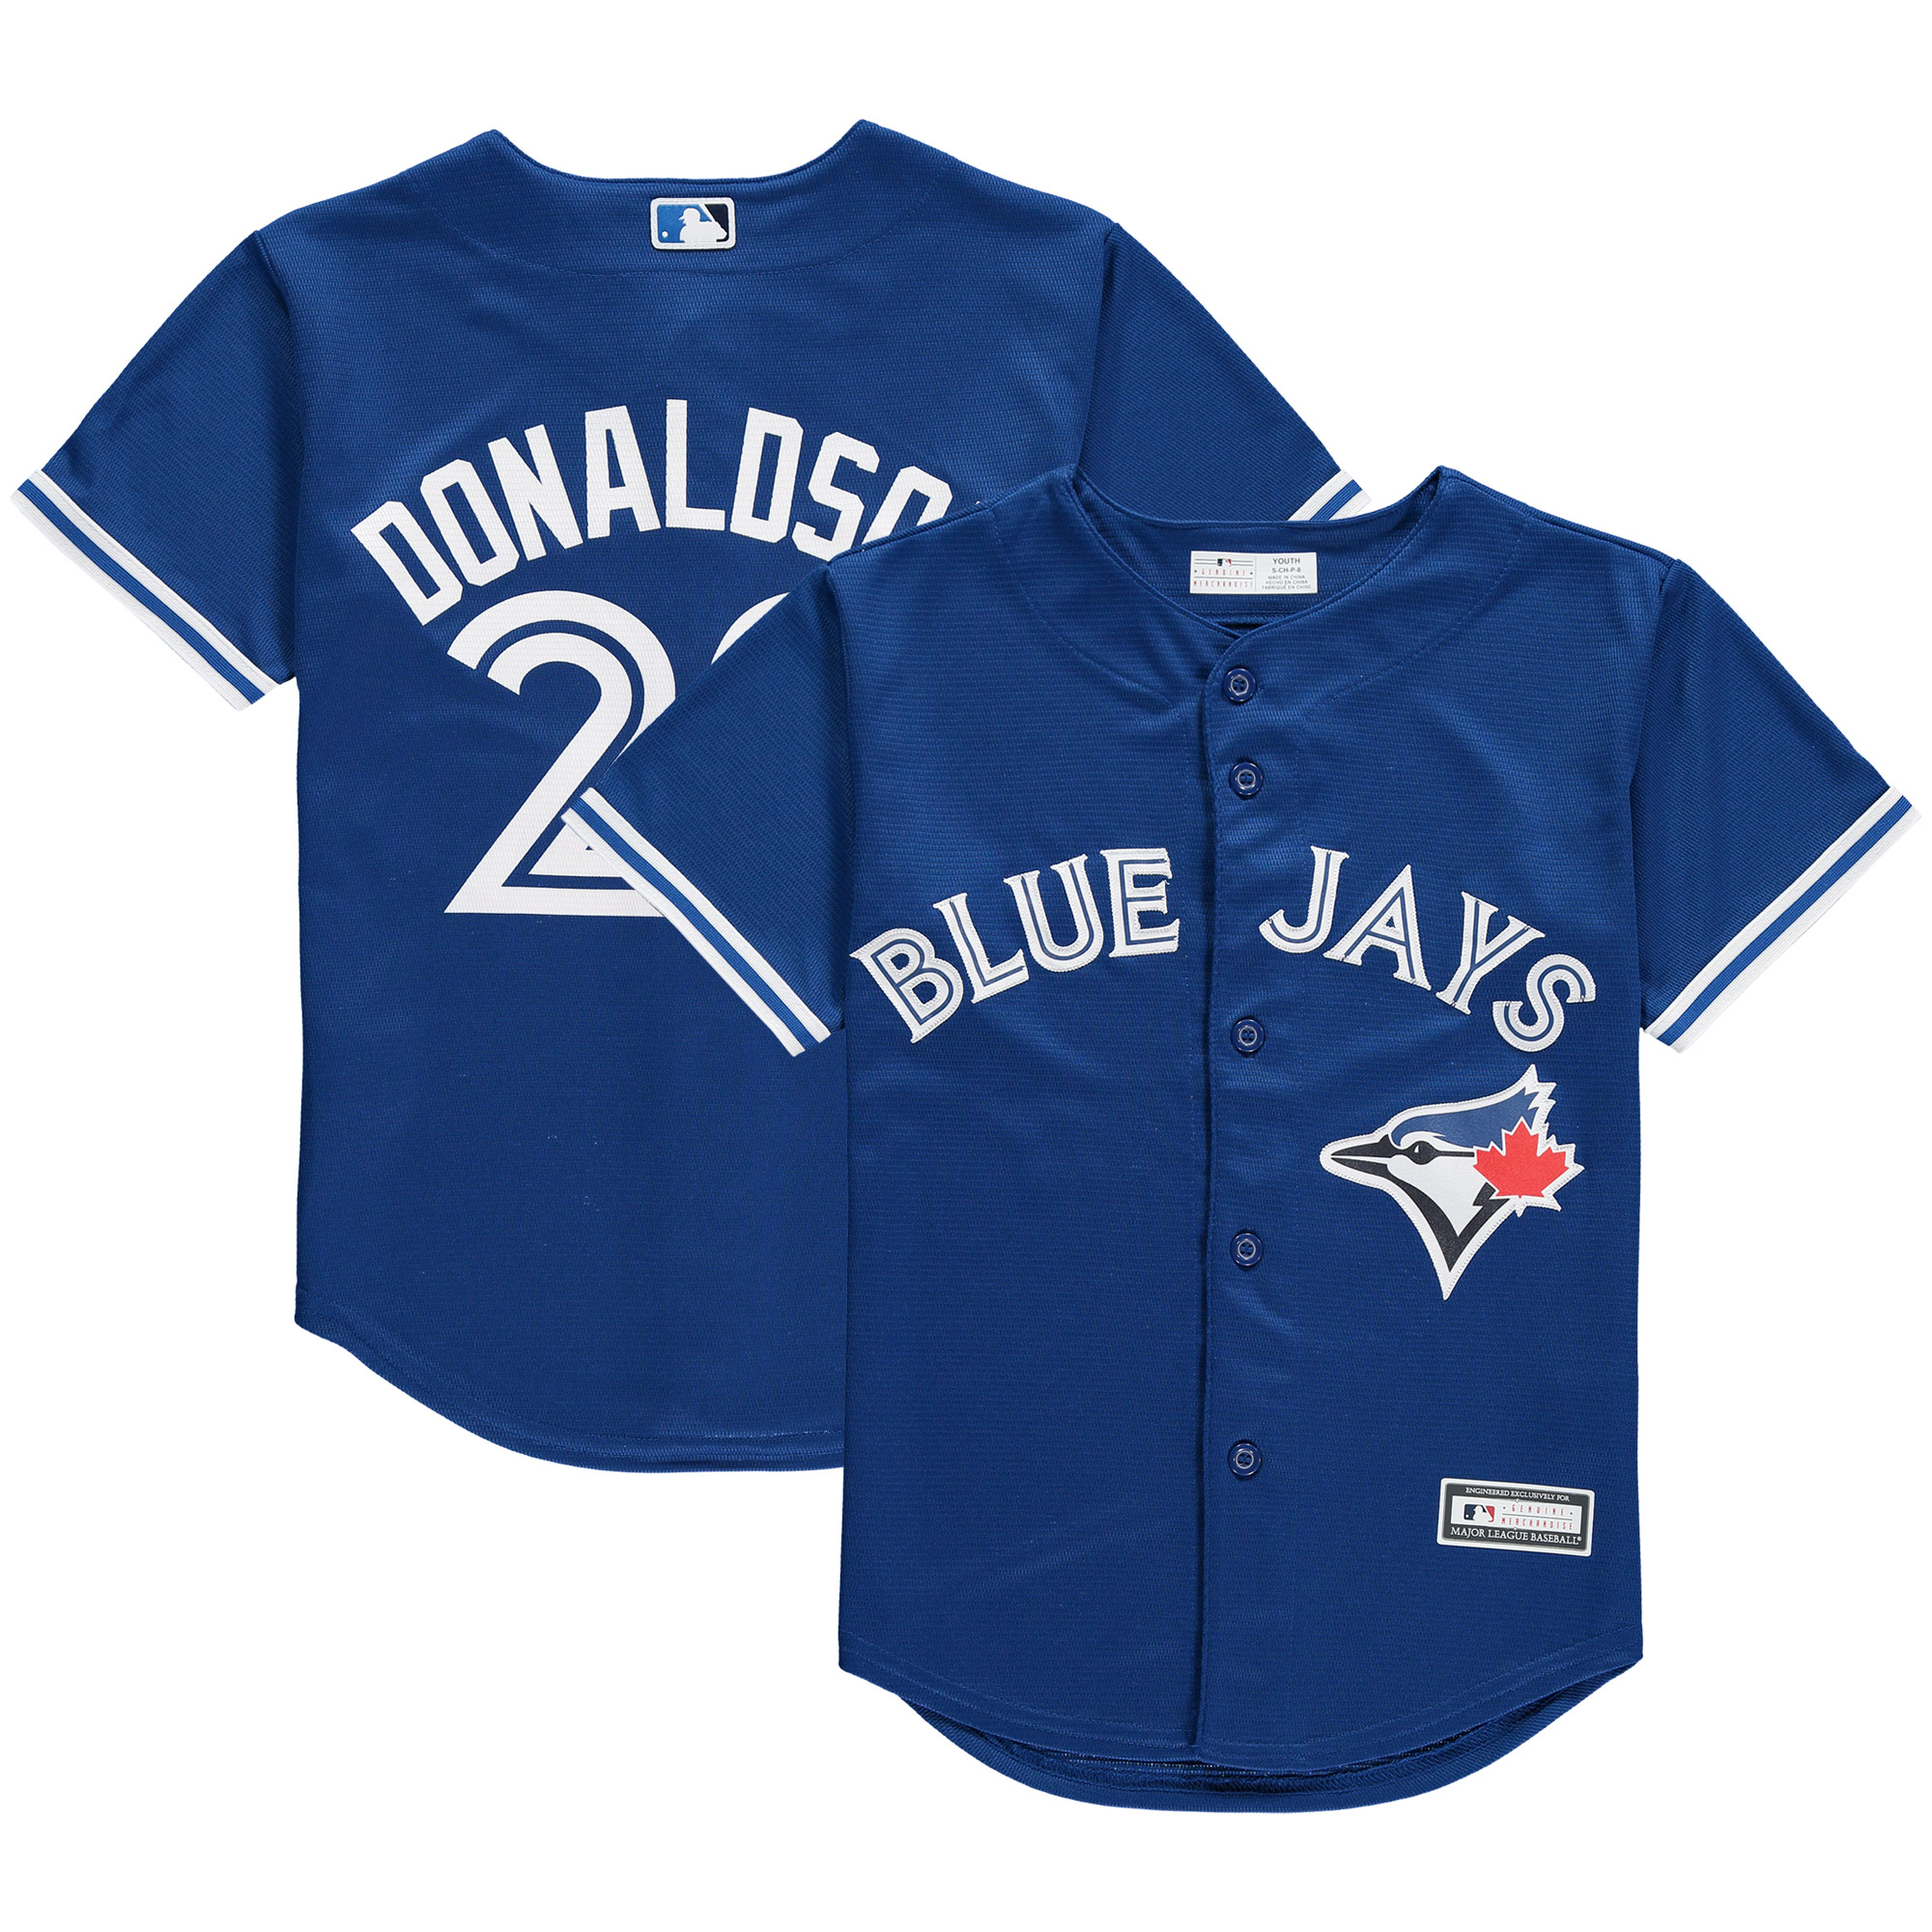 Josh Donaldson Toronto Blue Jays Youth Player Replica Jersey - Royal